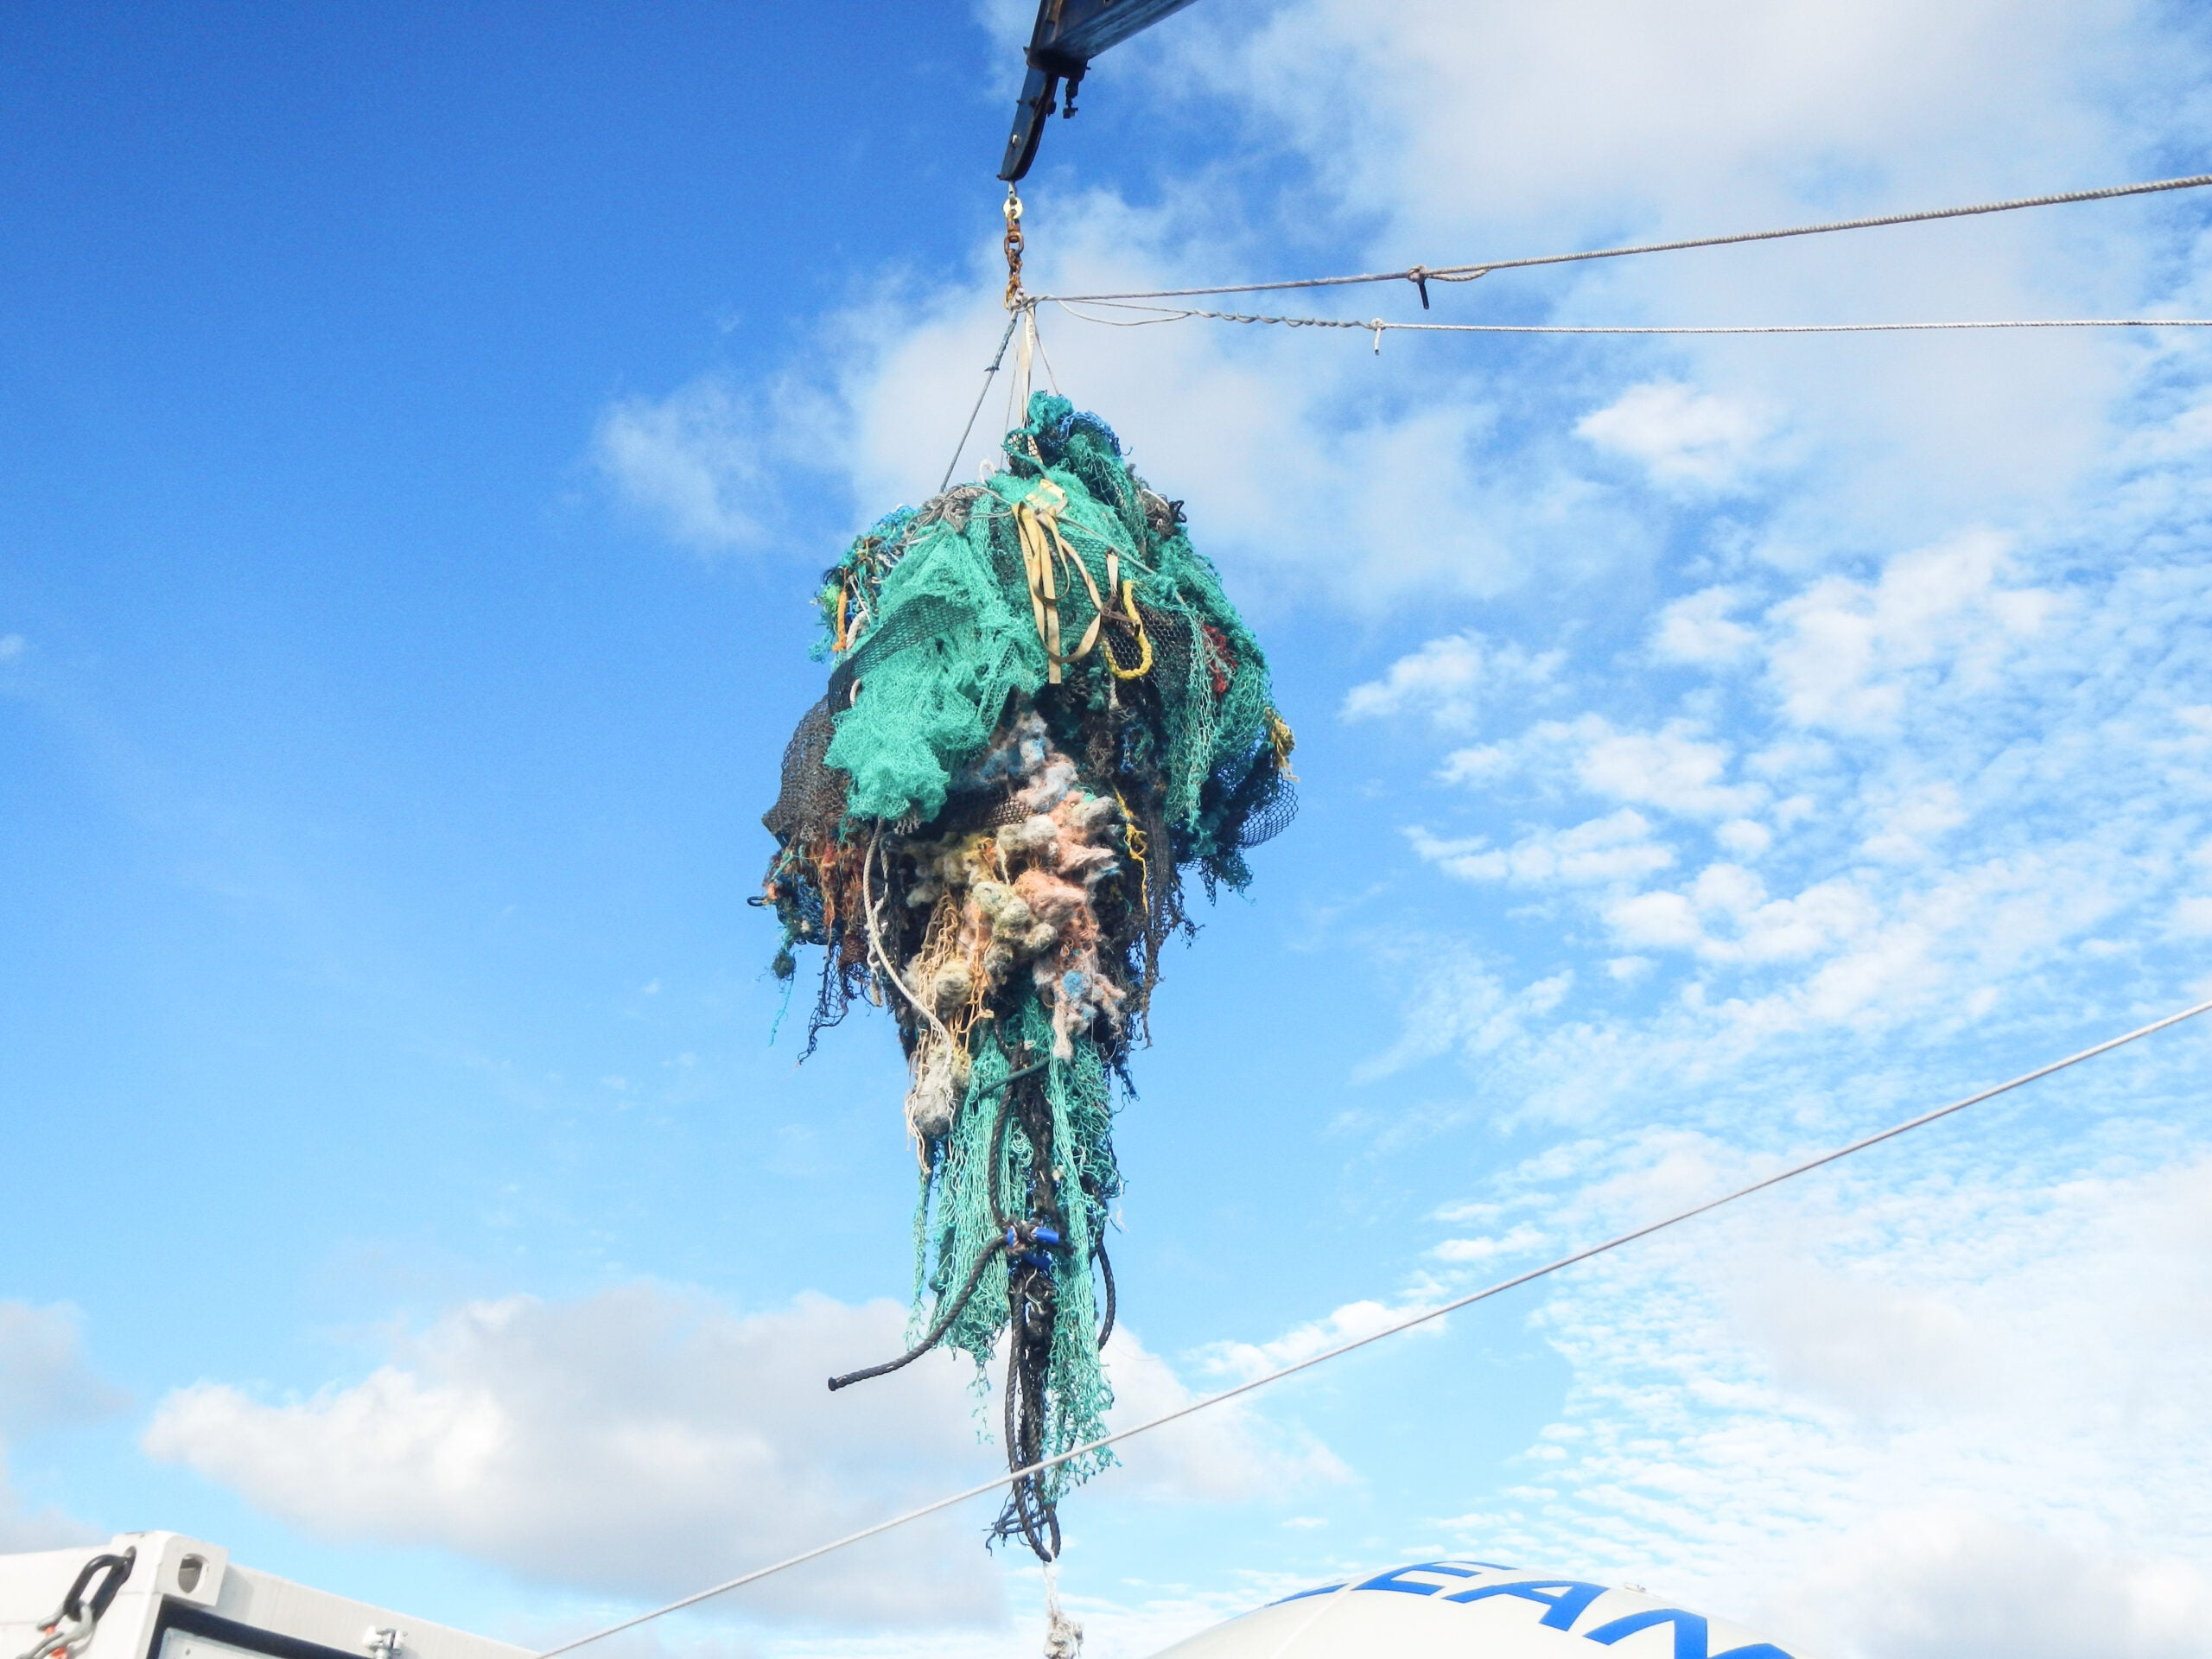 The great Pacific garbage patch is even trashier than we thought